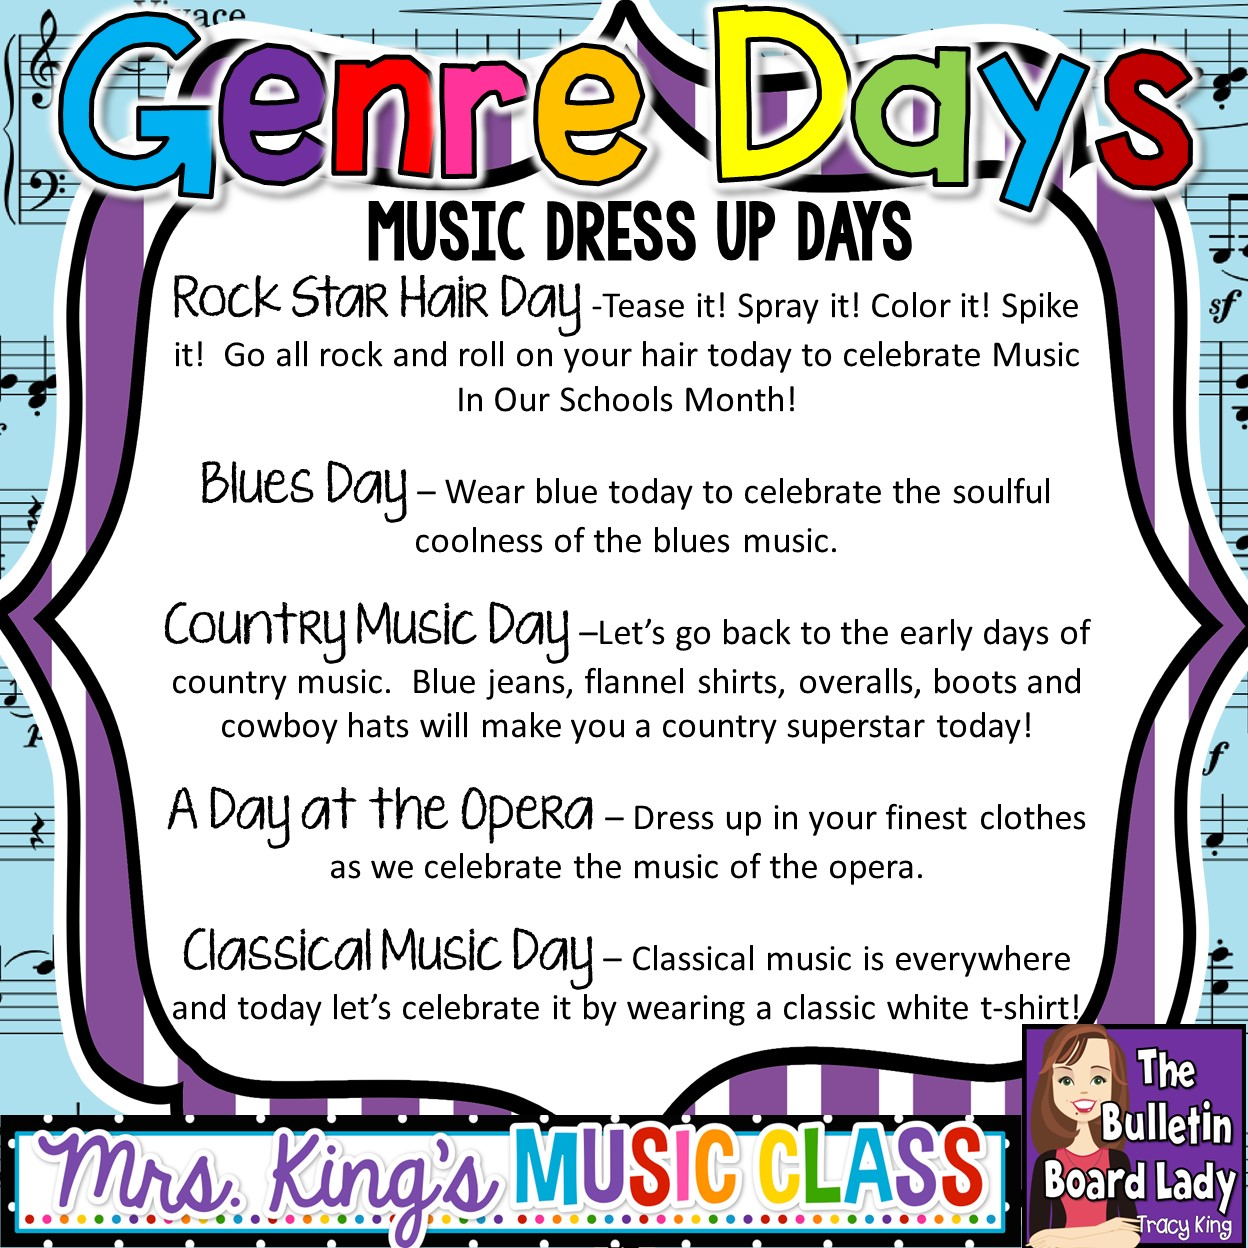 Mrs. King's Music Class: Spirit Days for Music In Our Schools Month